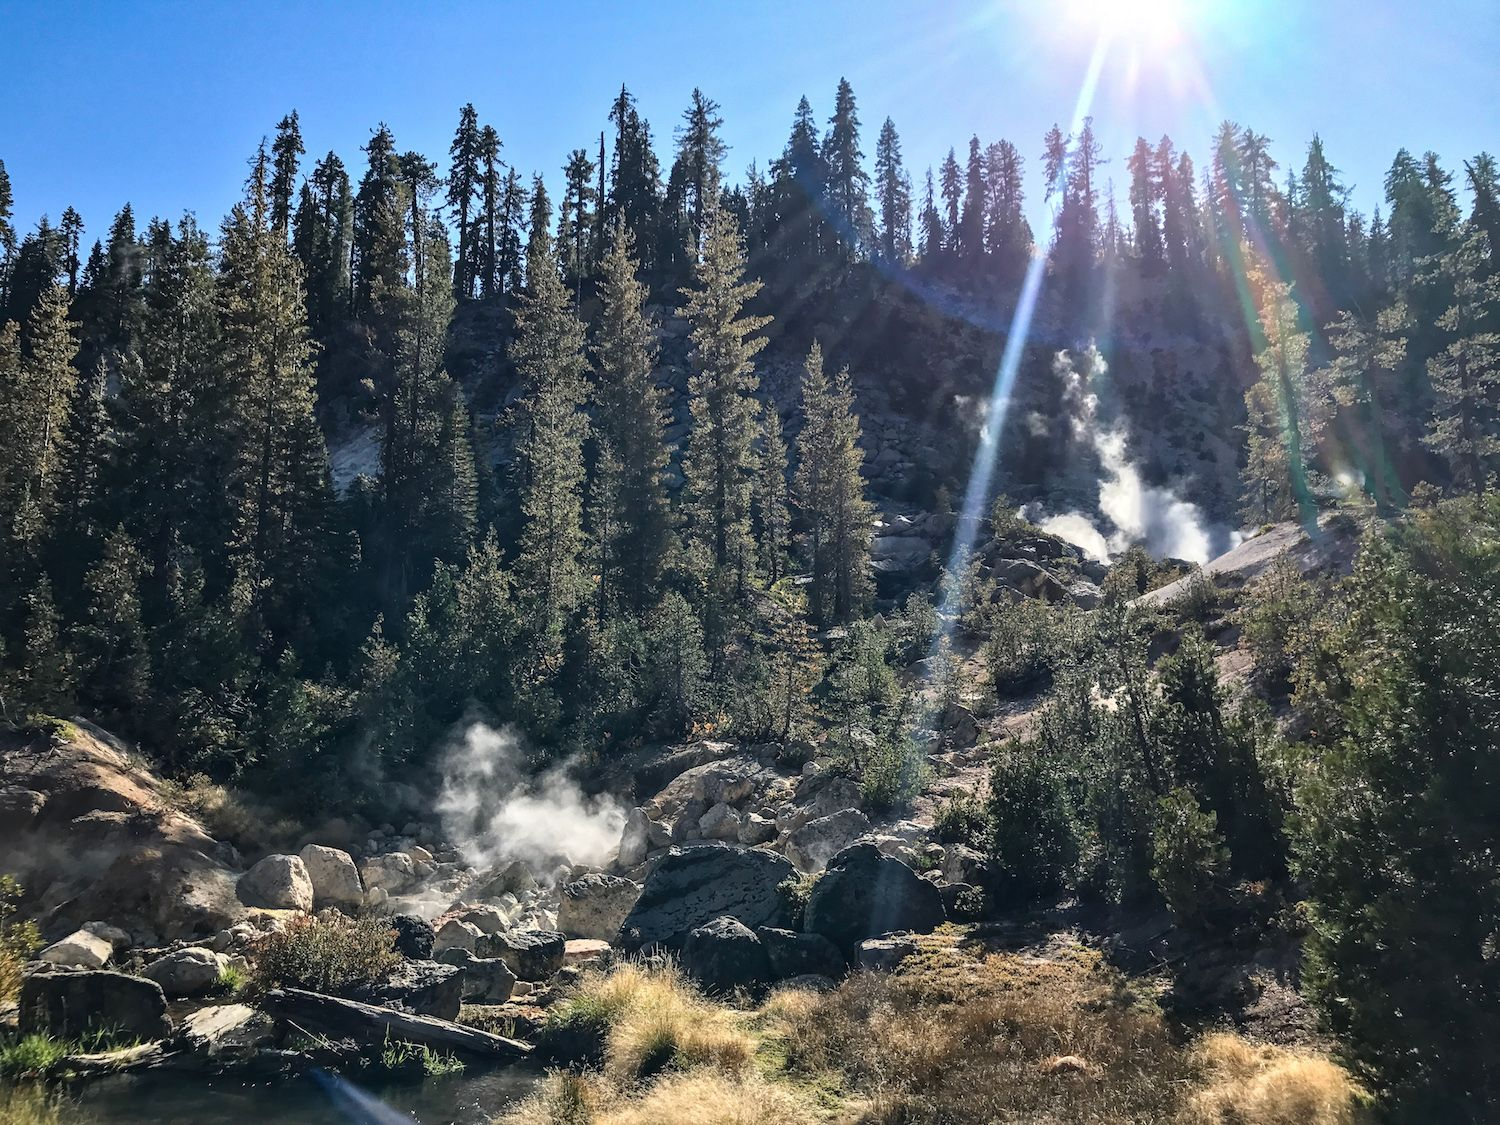 geothermal activity in Lassen national park